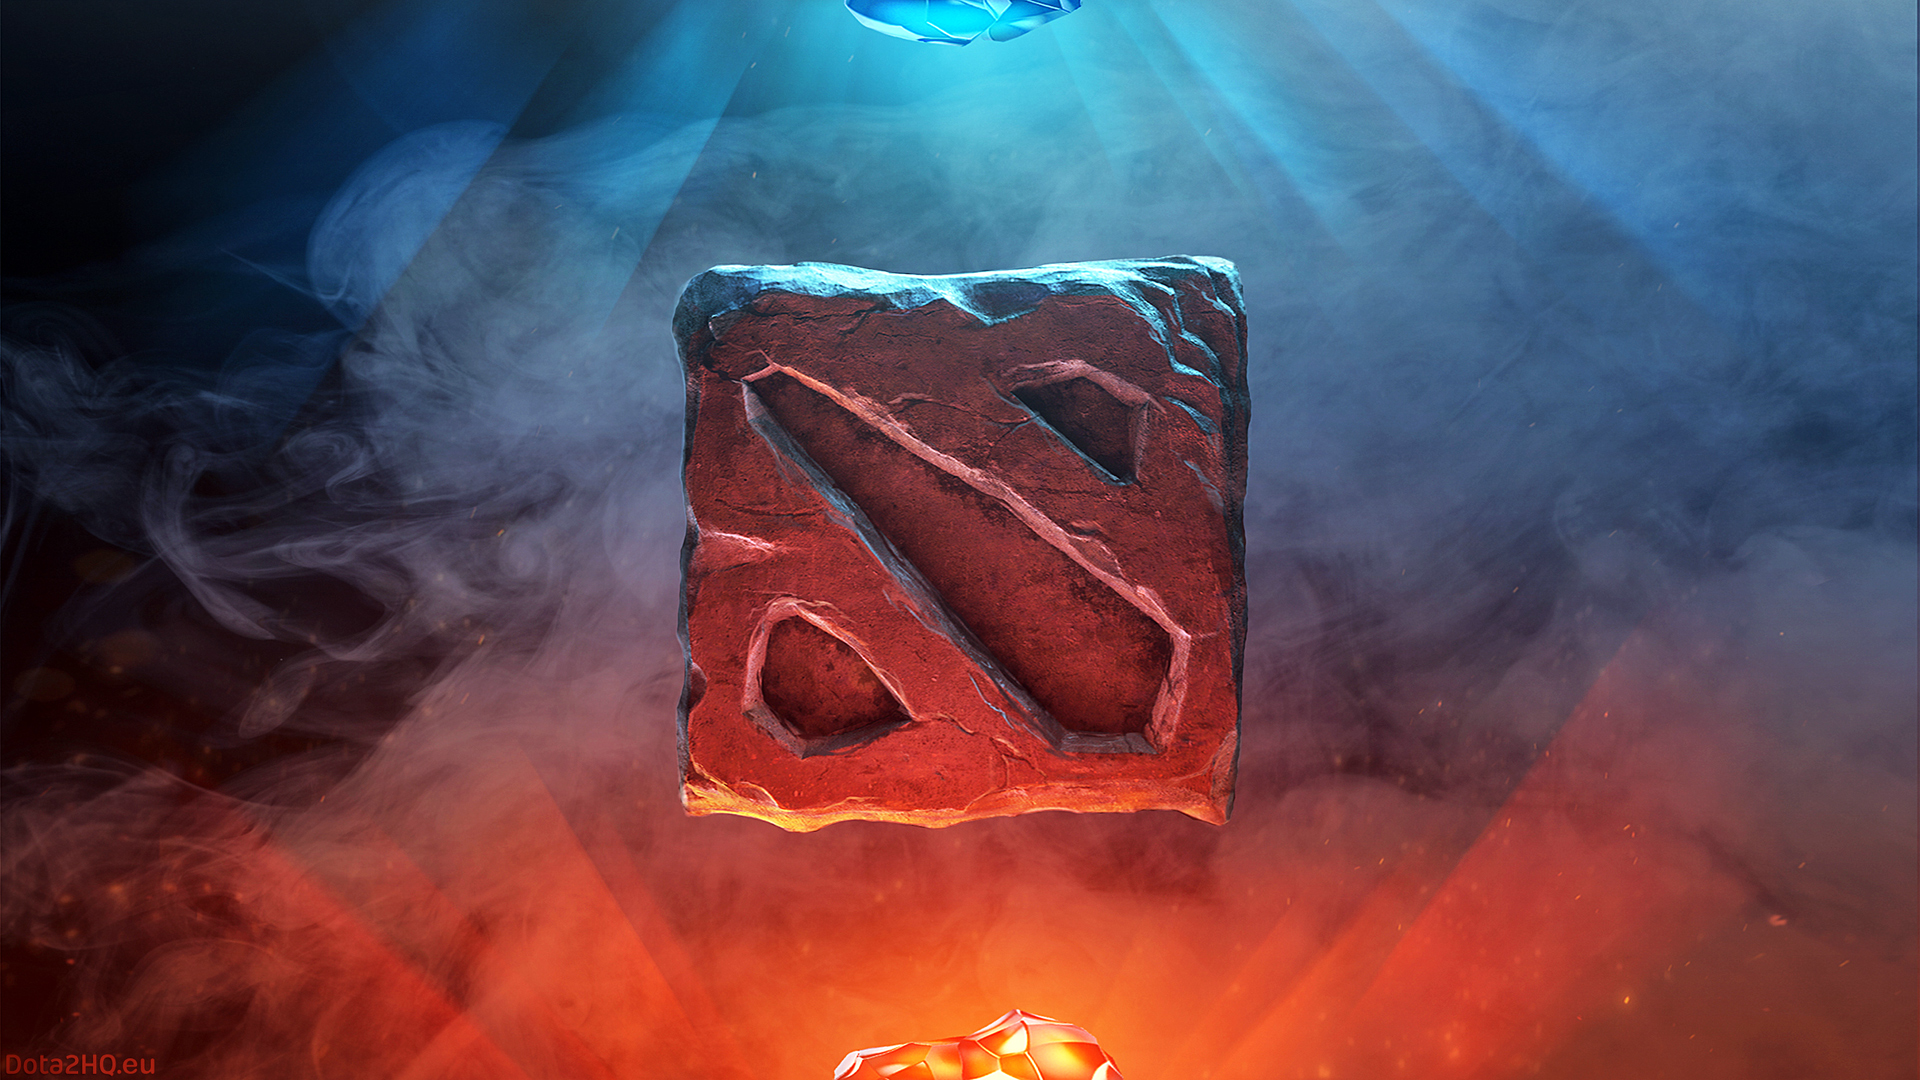 dota 2 logo fire 0r wallpaper hd